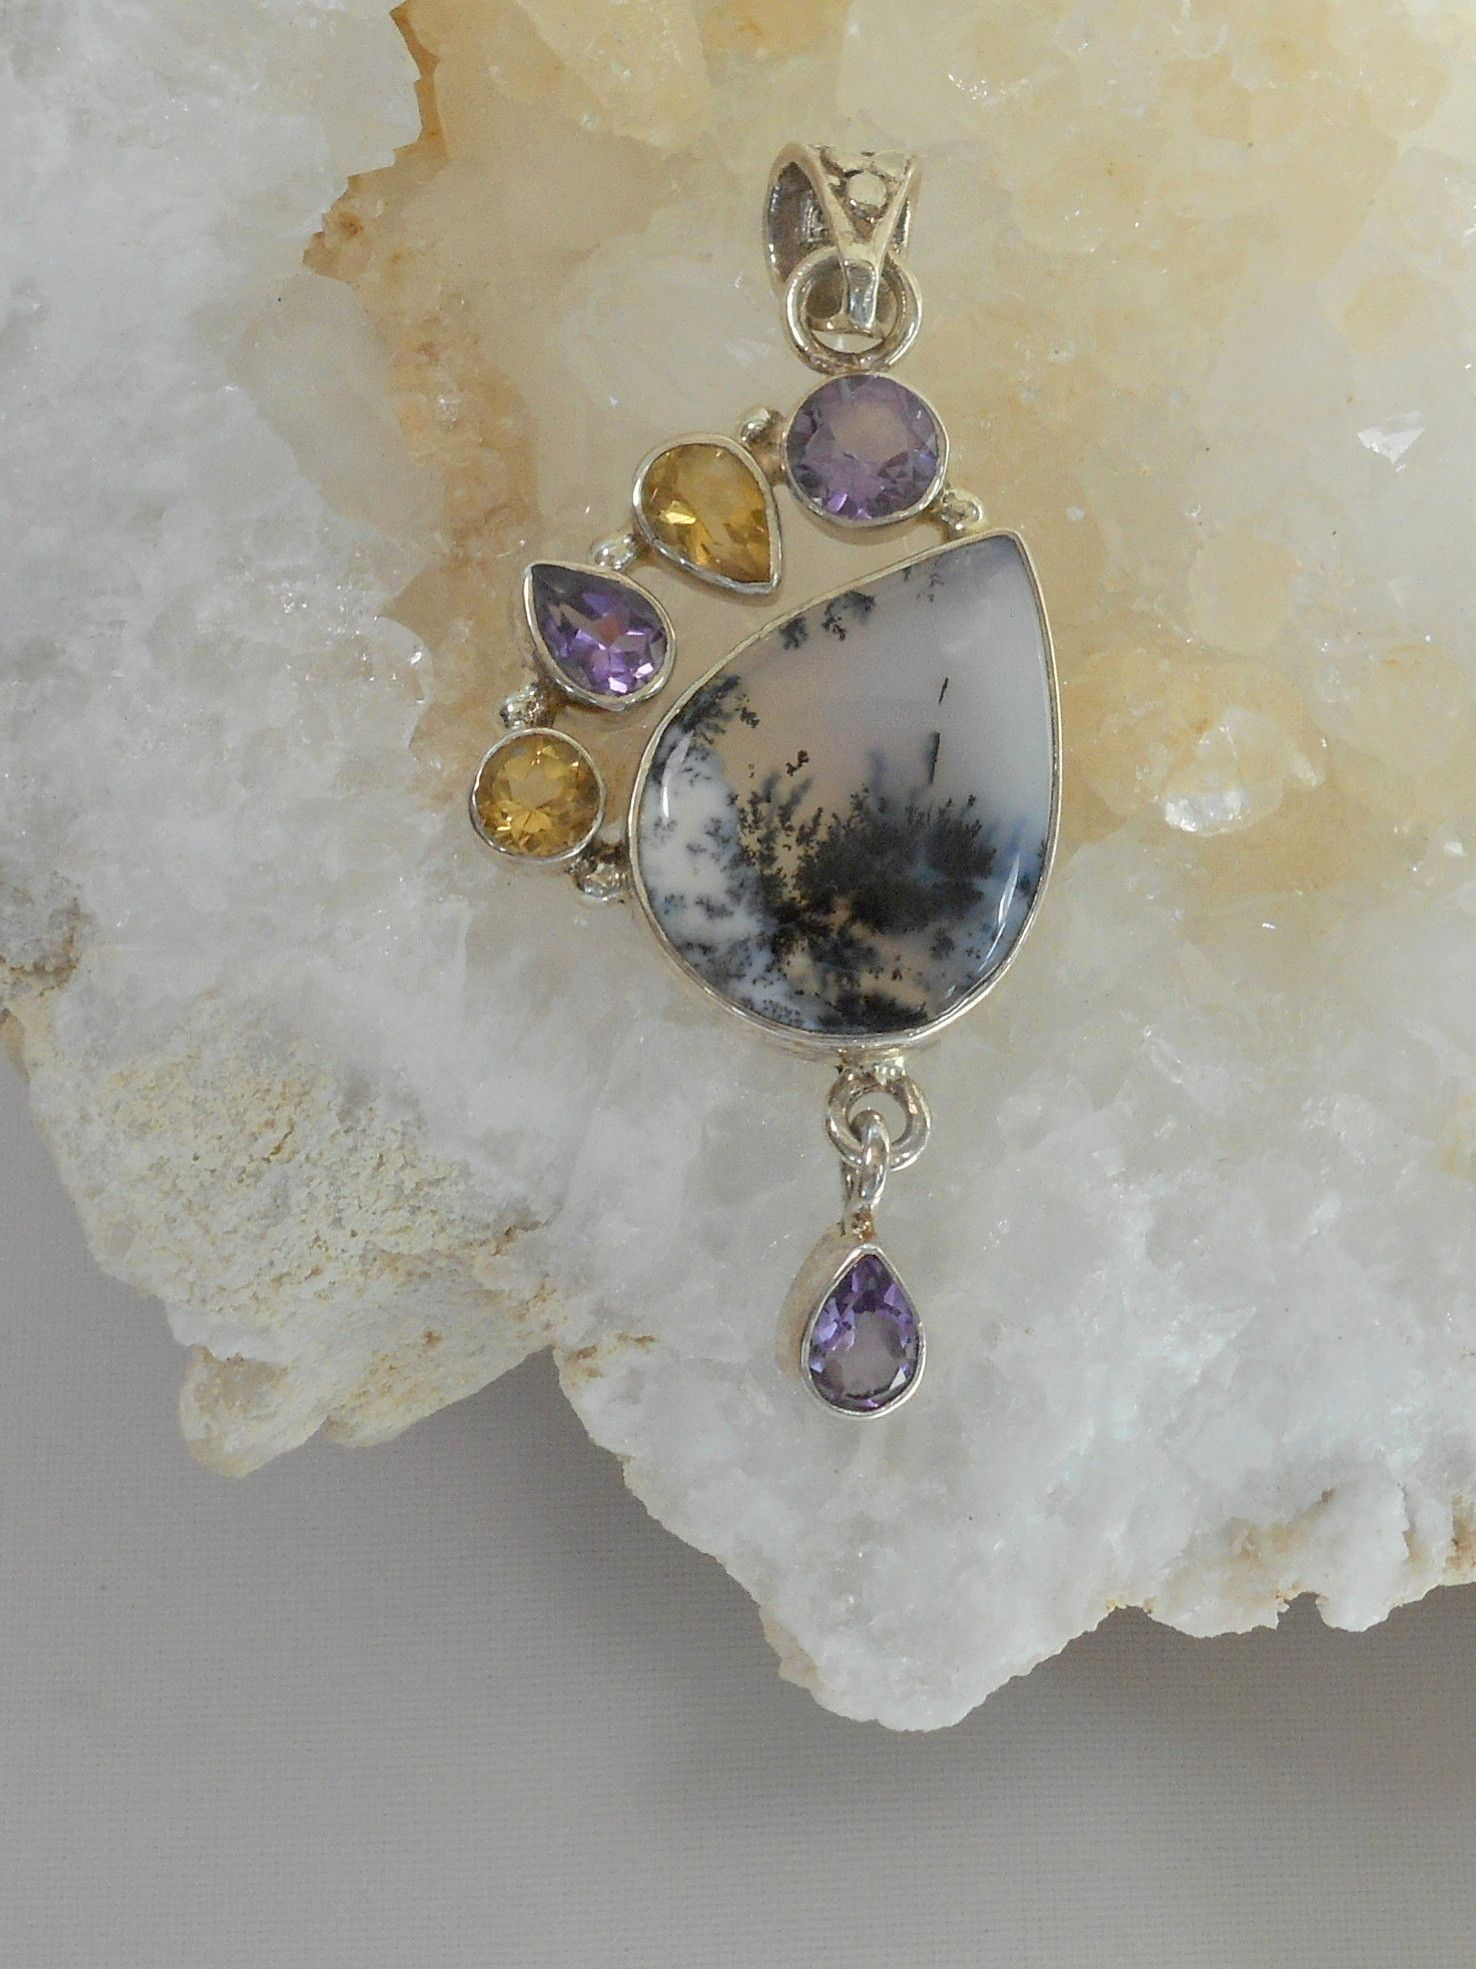 Dendritic Opal Teardrop Pendant with Amethyst and Citrine